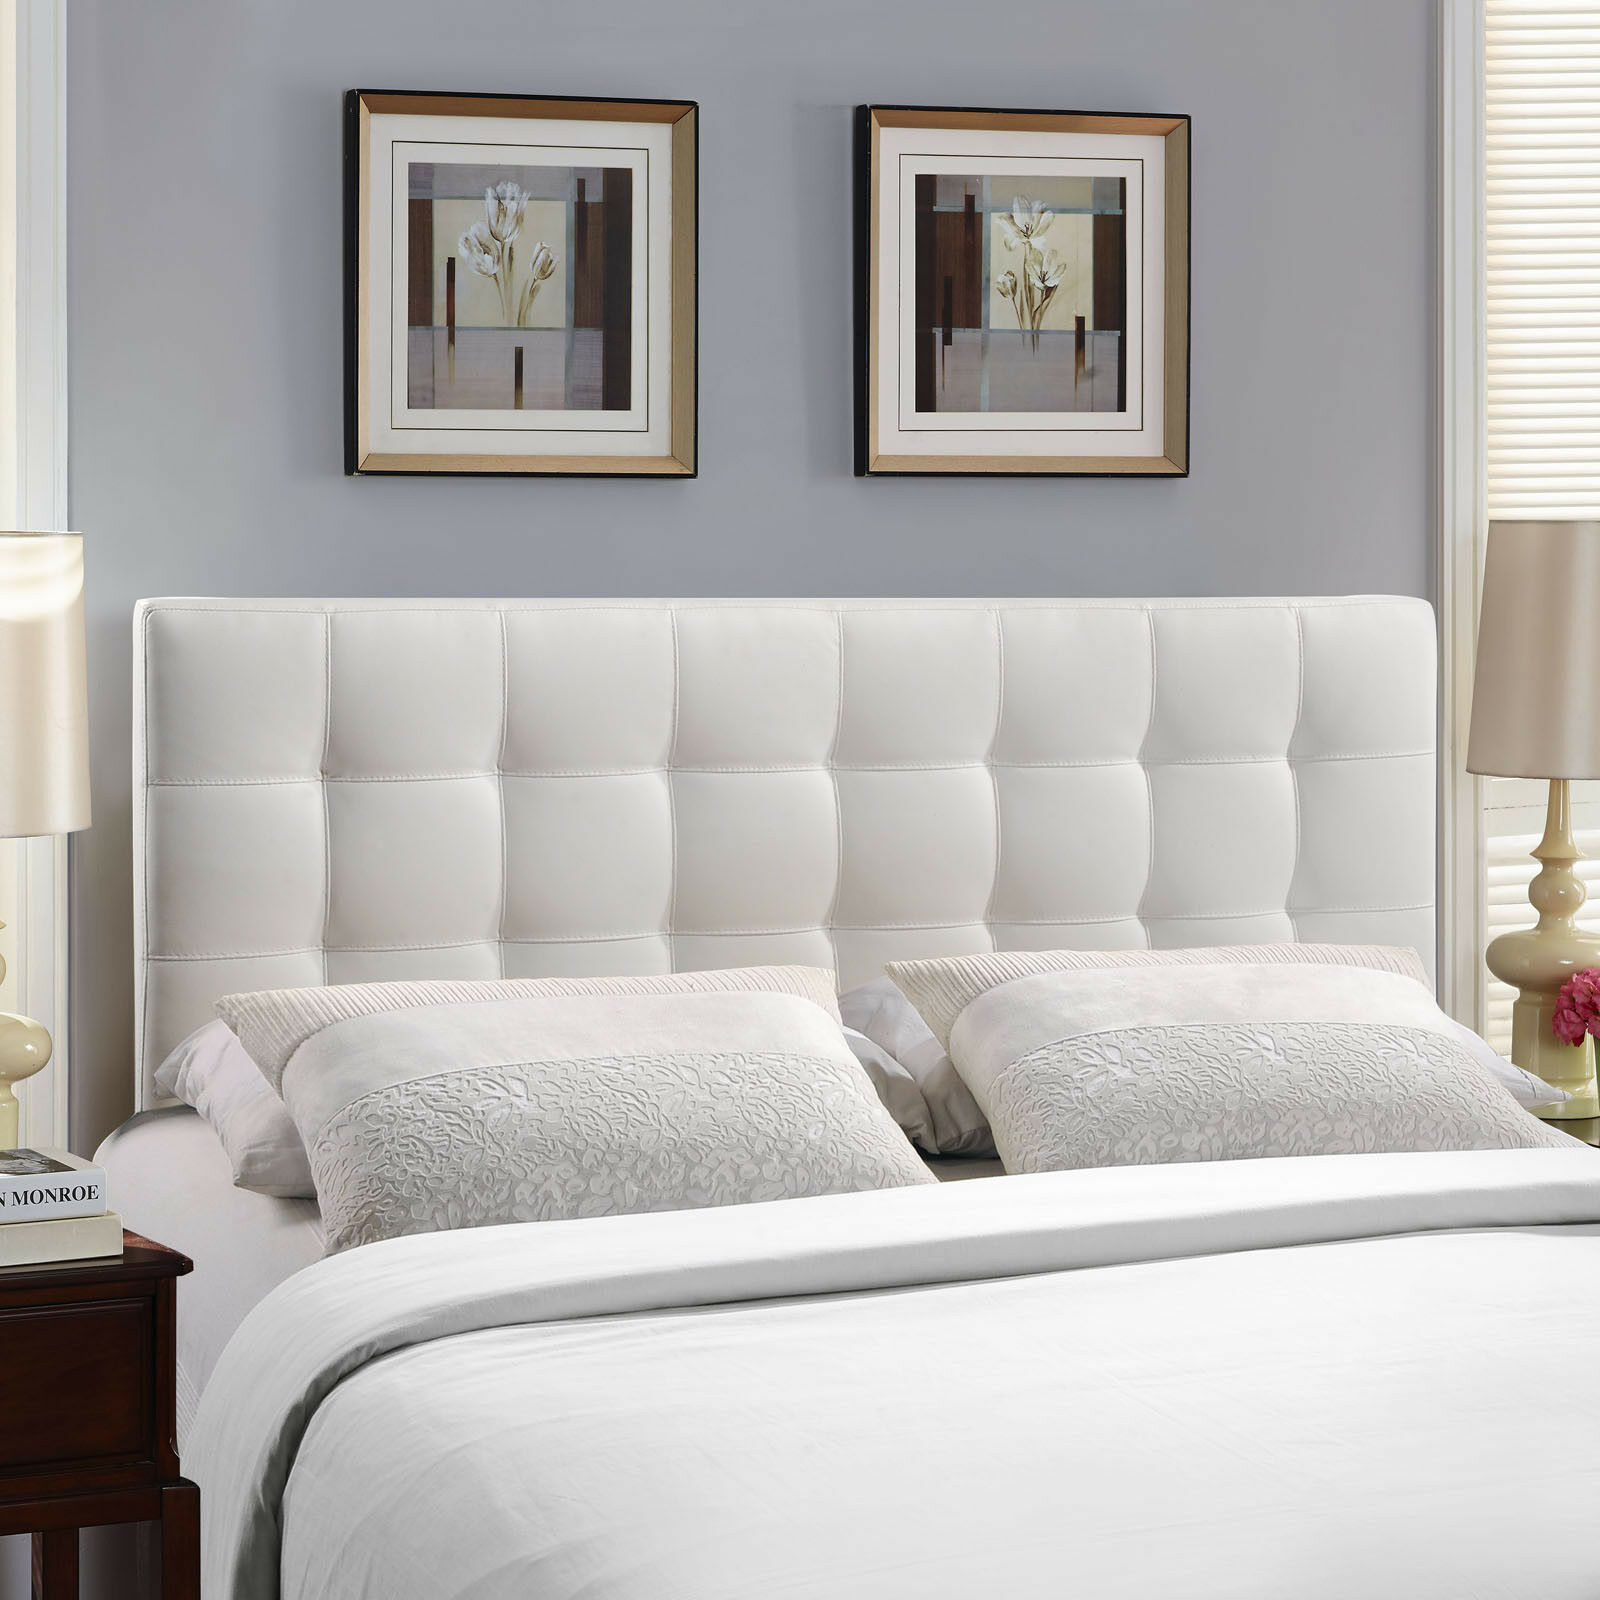 Tufted Upholstered Faux Leather Square Full Size Headboard In White Ebay